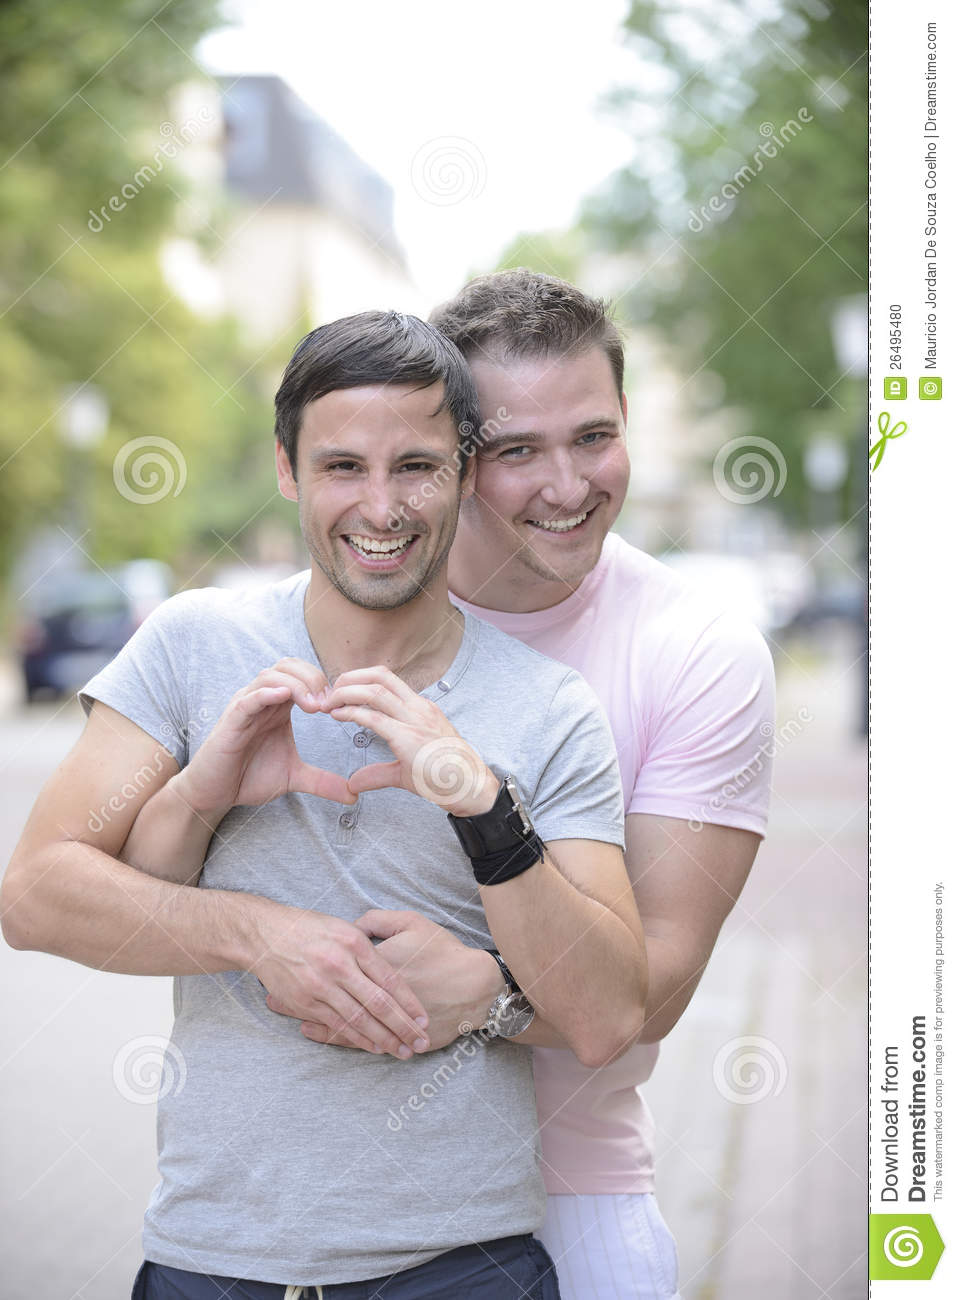 Happy Gay Couple Outdoors Stock Photo Image 26495480